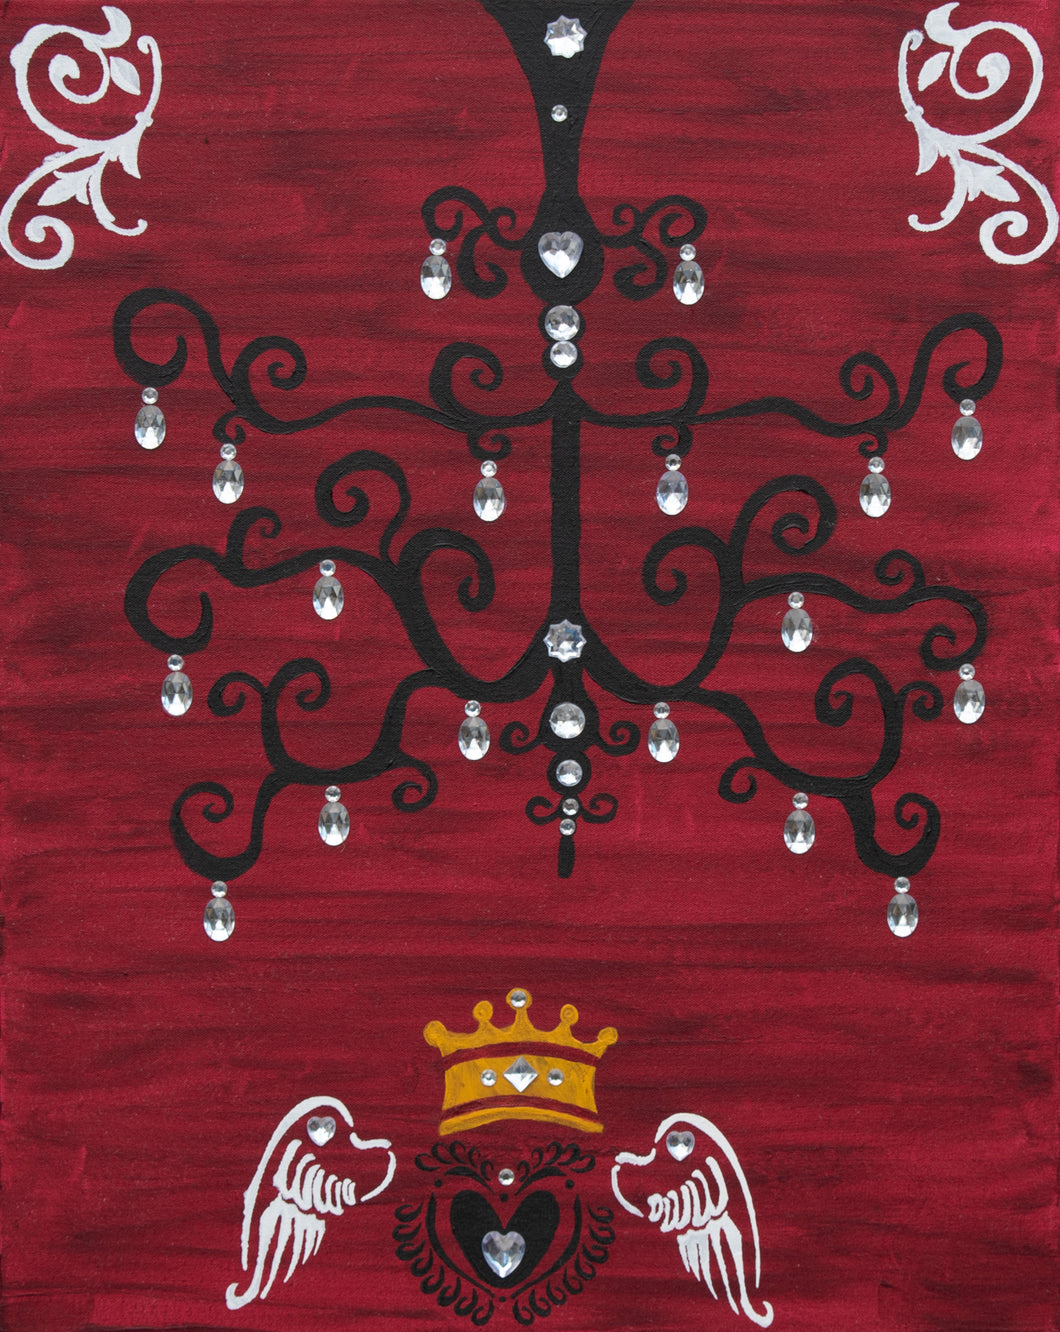 Chandelier With Crystals | Original Painting - Teresa Andre Art